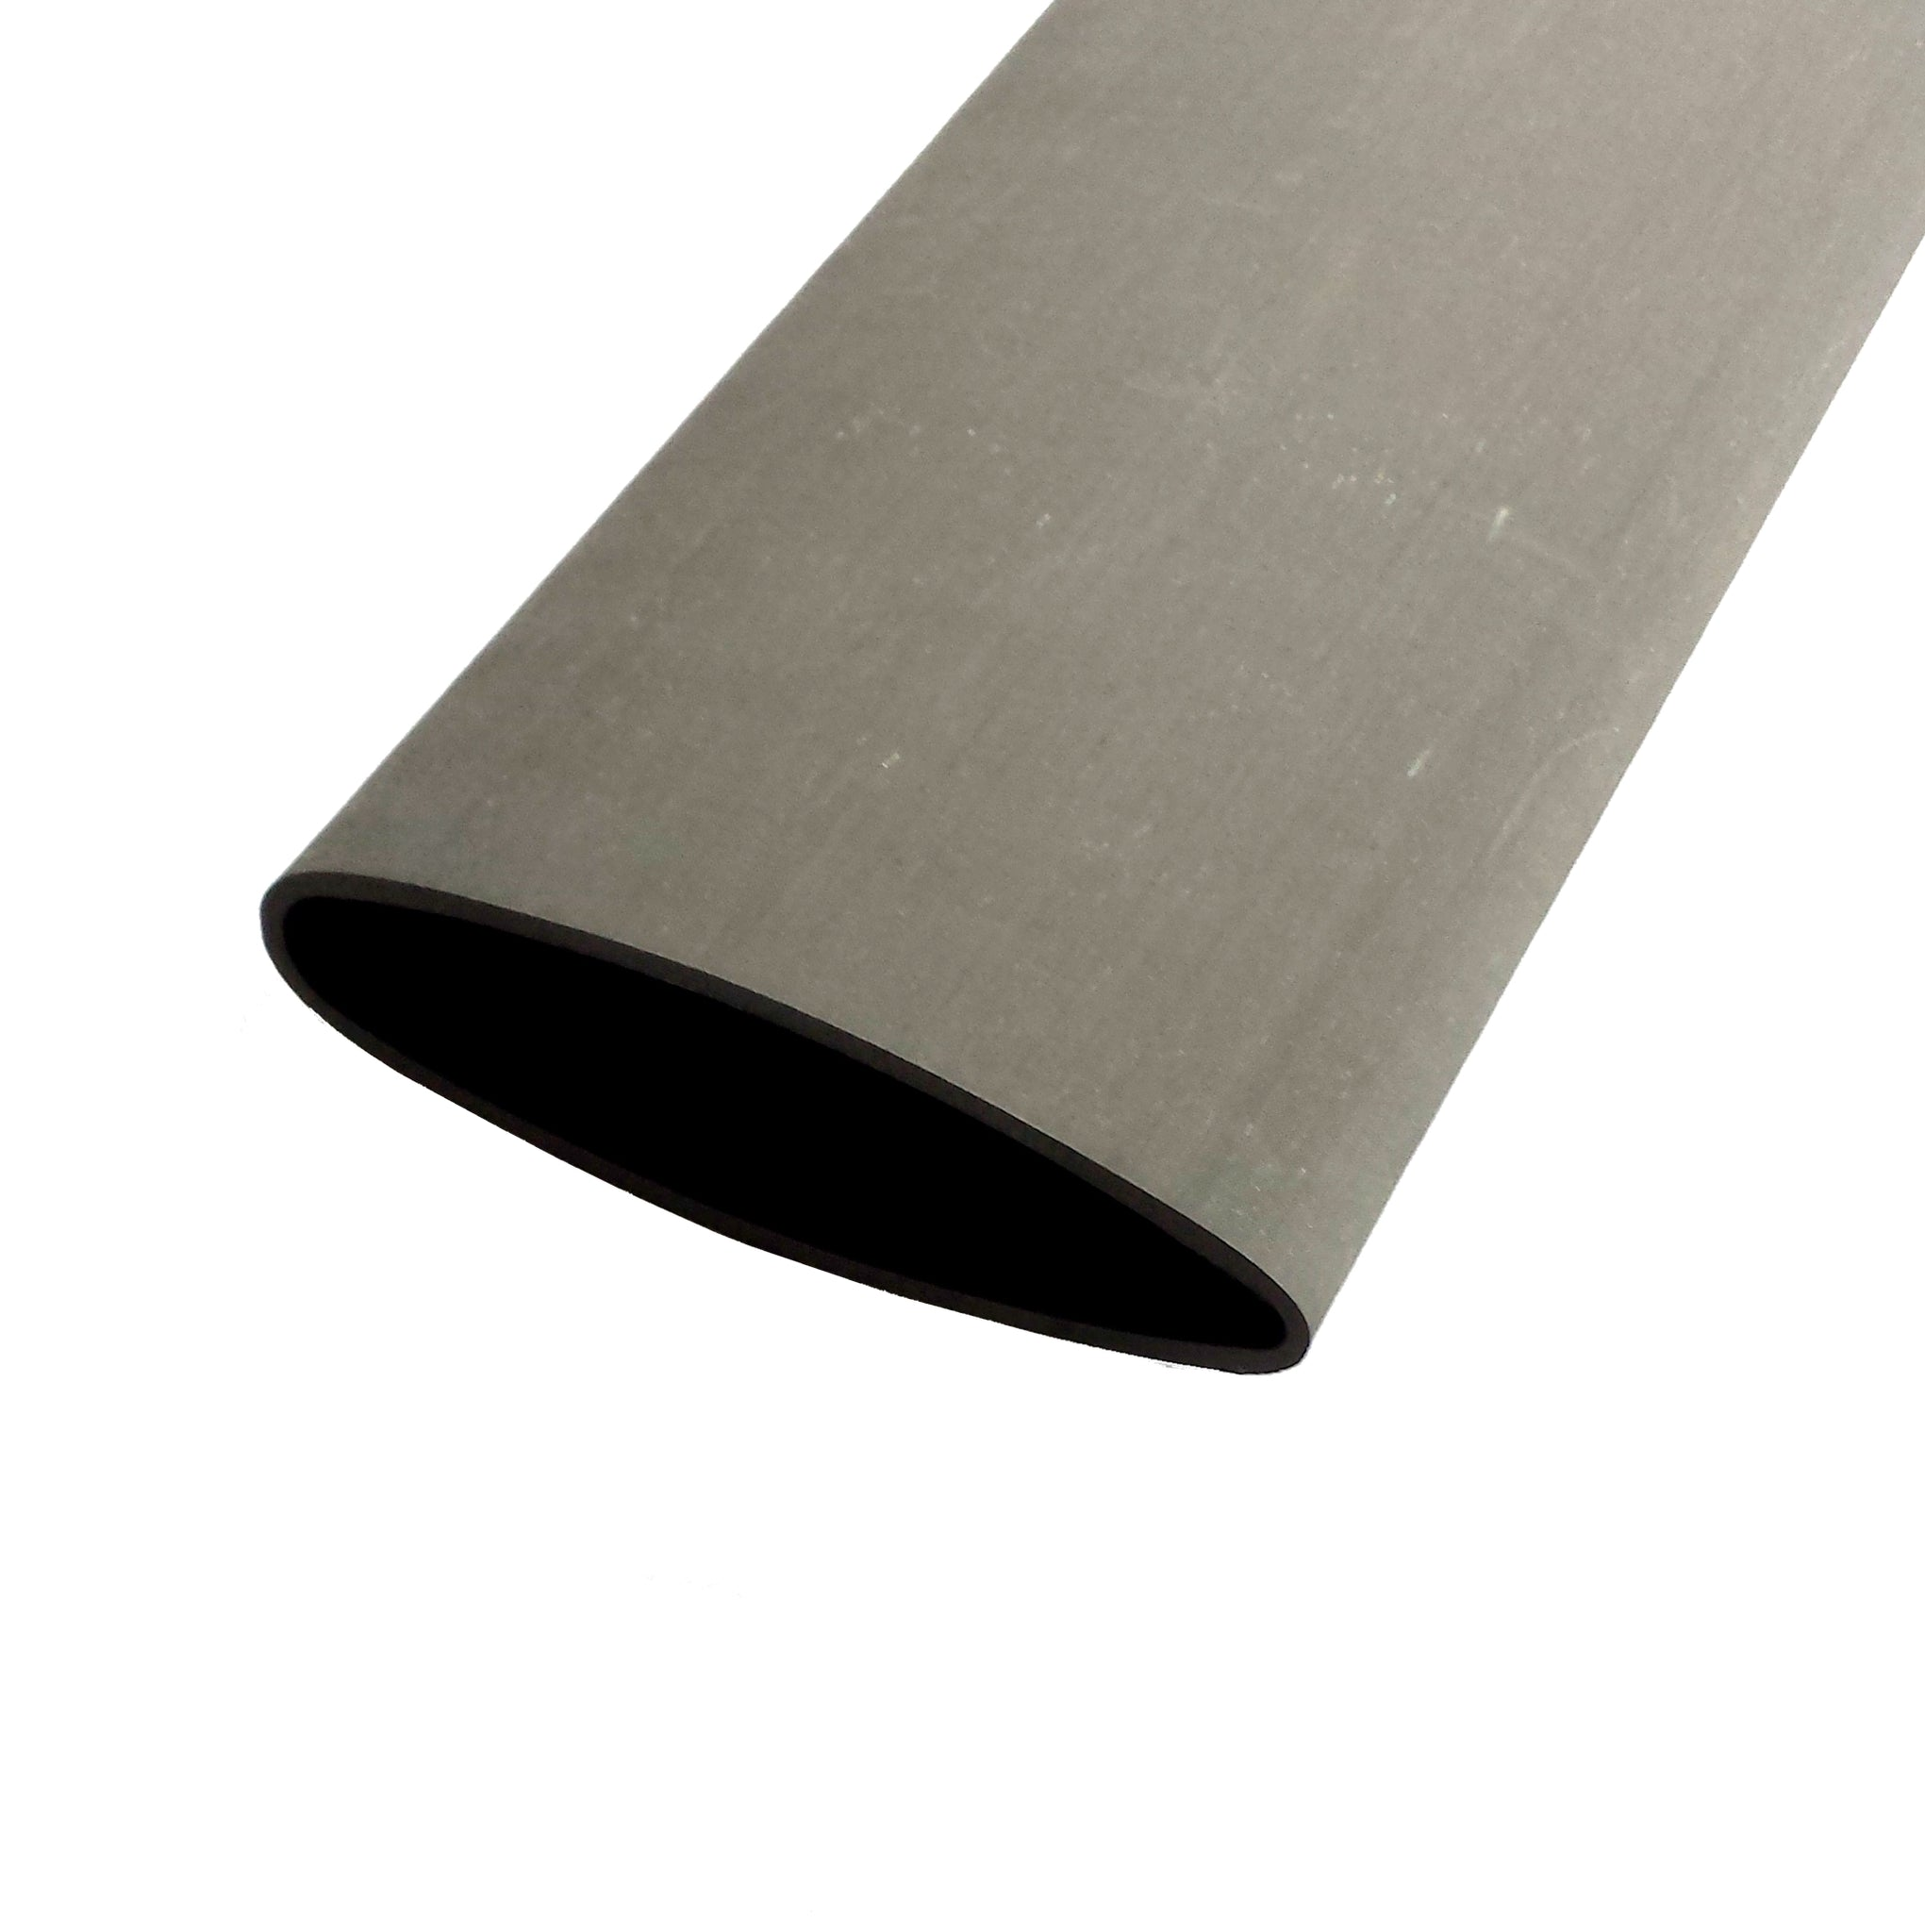 Airfoil Carbon Tubing - Uni Dull Peel Ply Finish - 9 25in